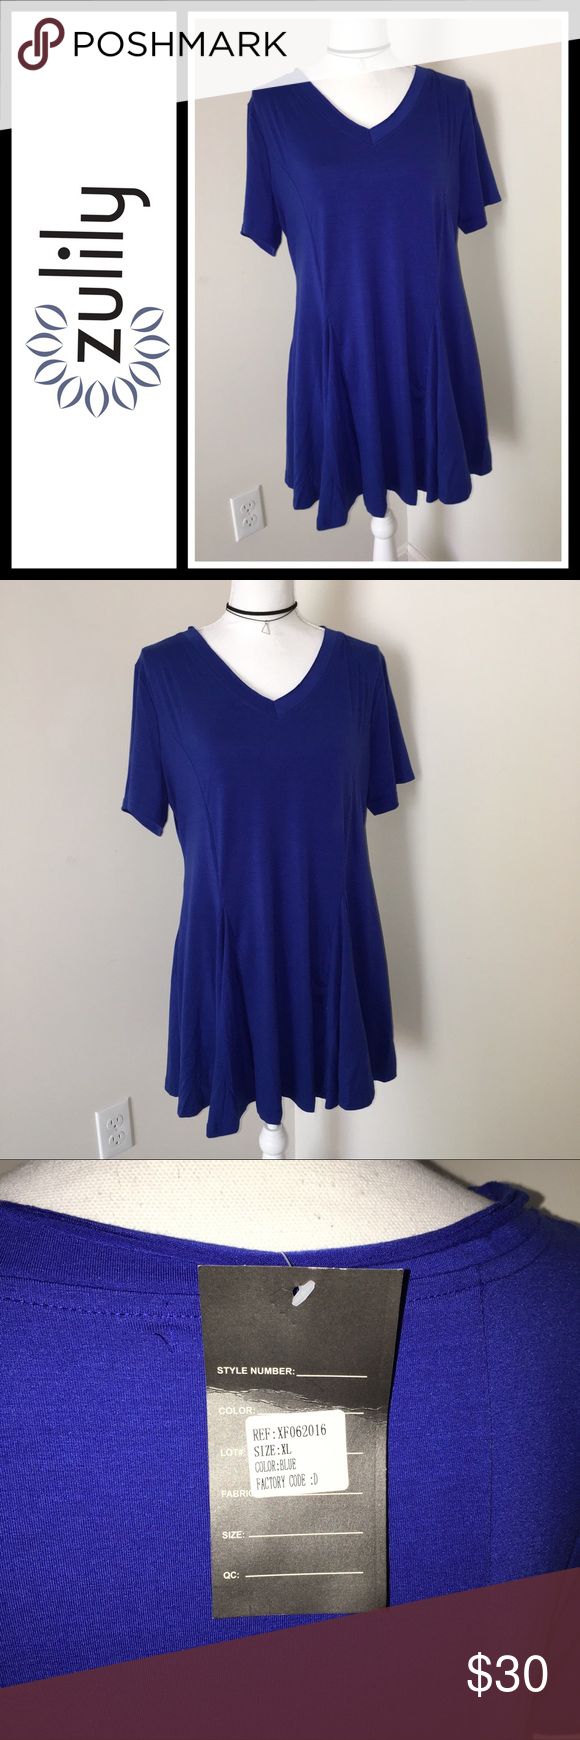 Zulily Reborn Blue Short sleeve peplum tunic New with tags